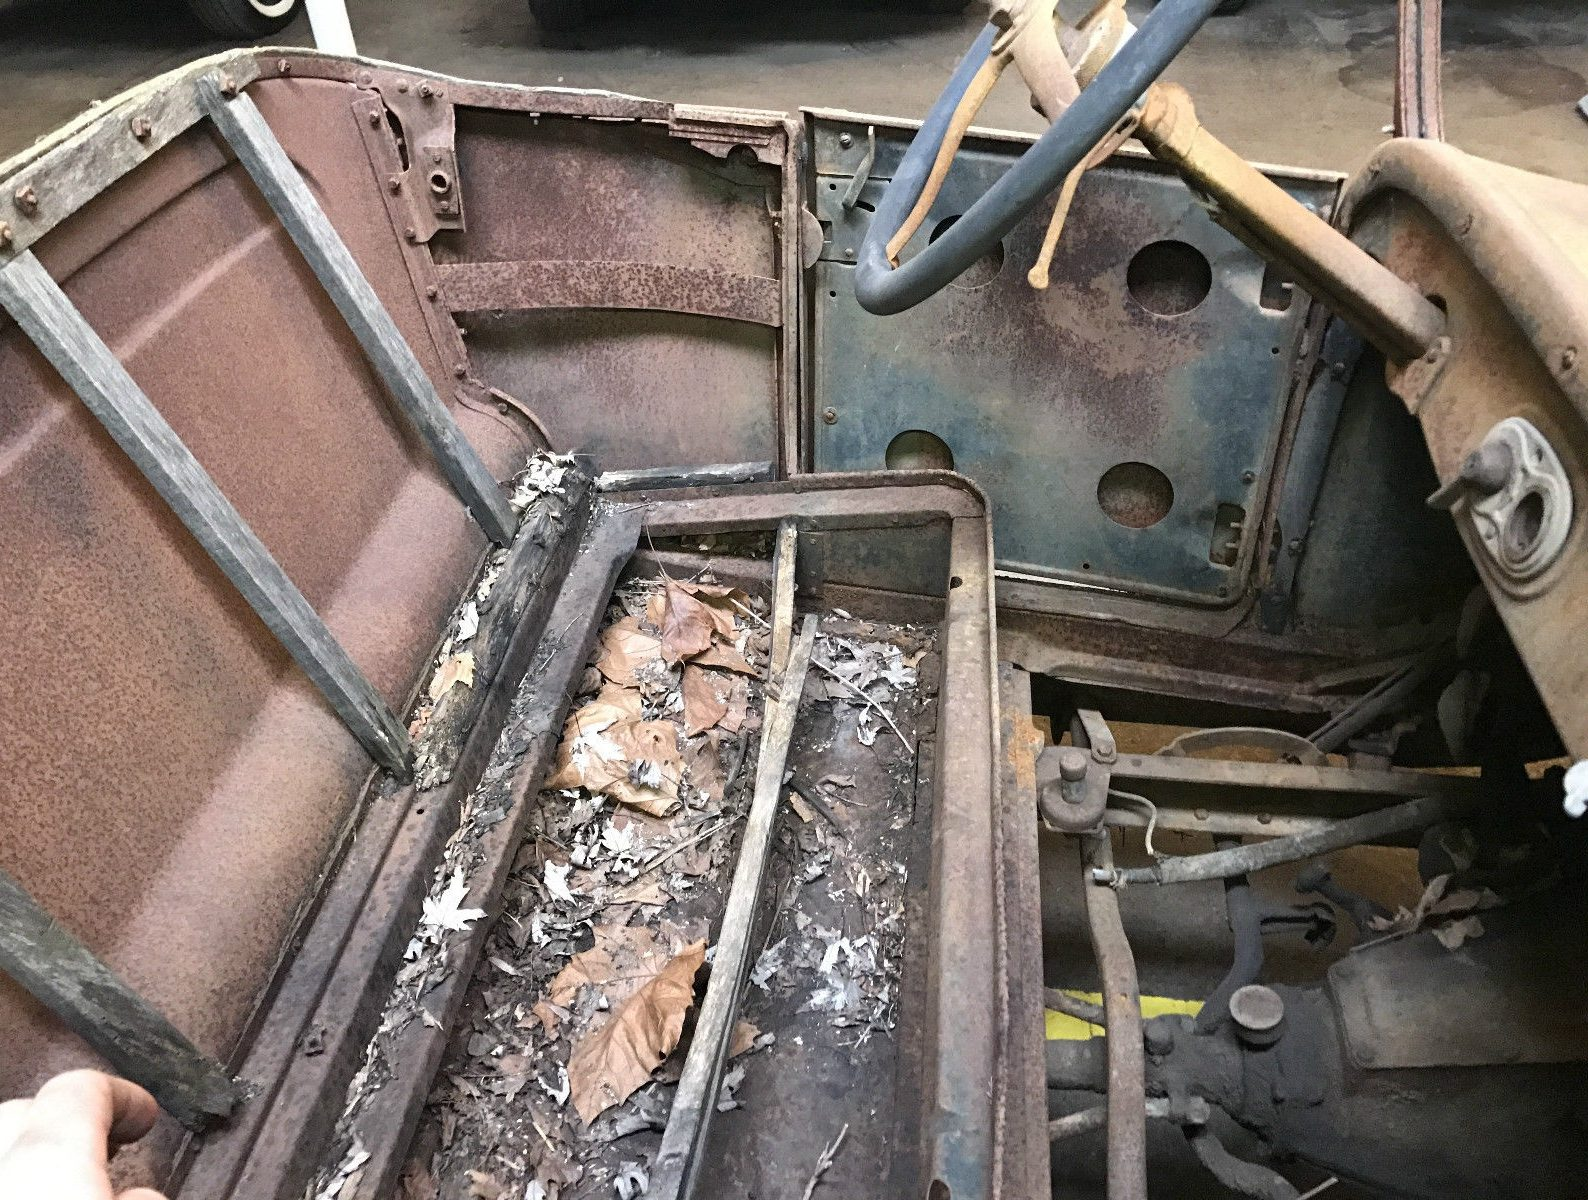 Patina plus 1926 ford model t pickup the vertical wood pieces appear to be rotted near the bottom so likely there are problems elsewhere in the wooden body frame sciox Images